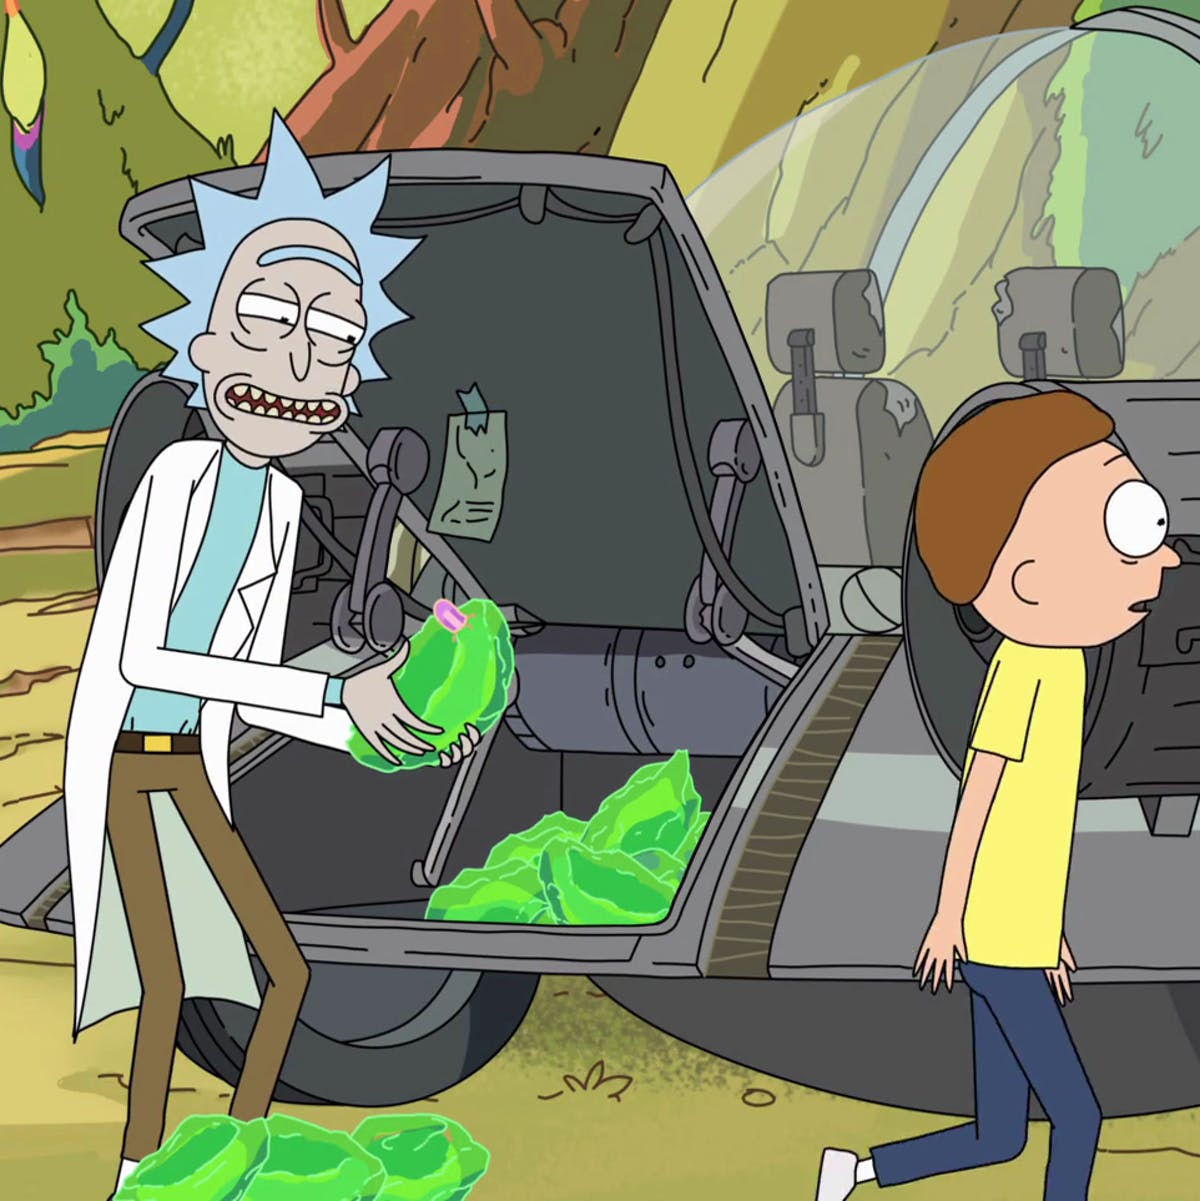 'Rick and Morty' Season 4 release date could resolve 6 important theories